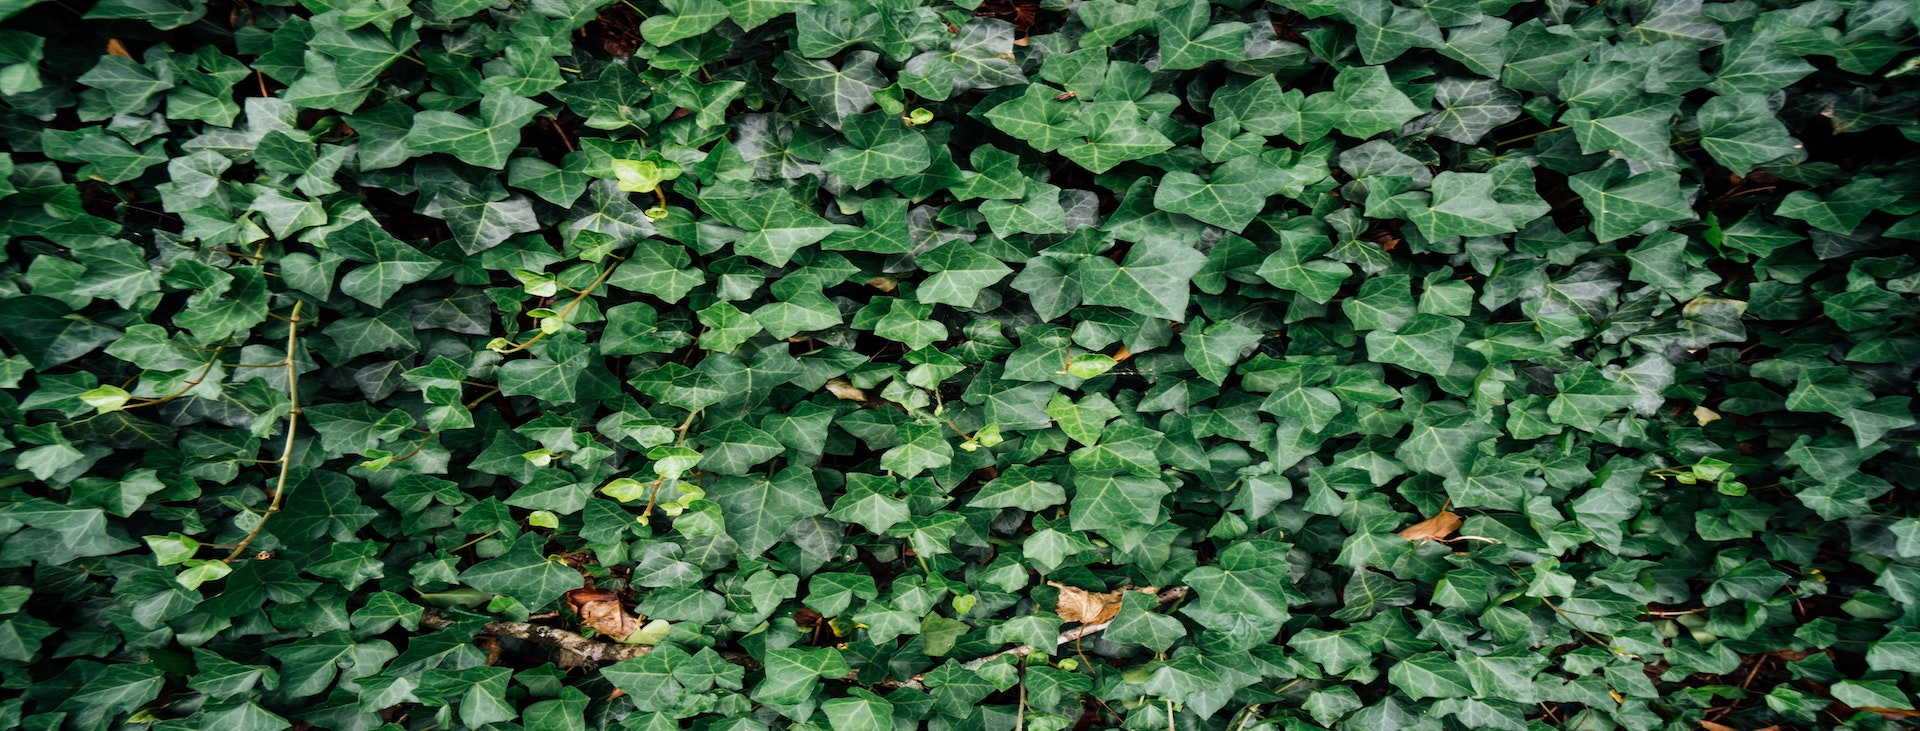 walls of leaves